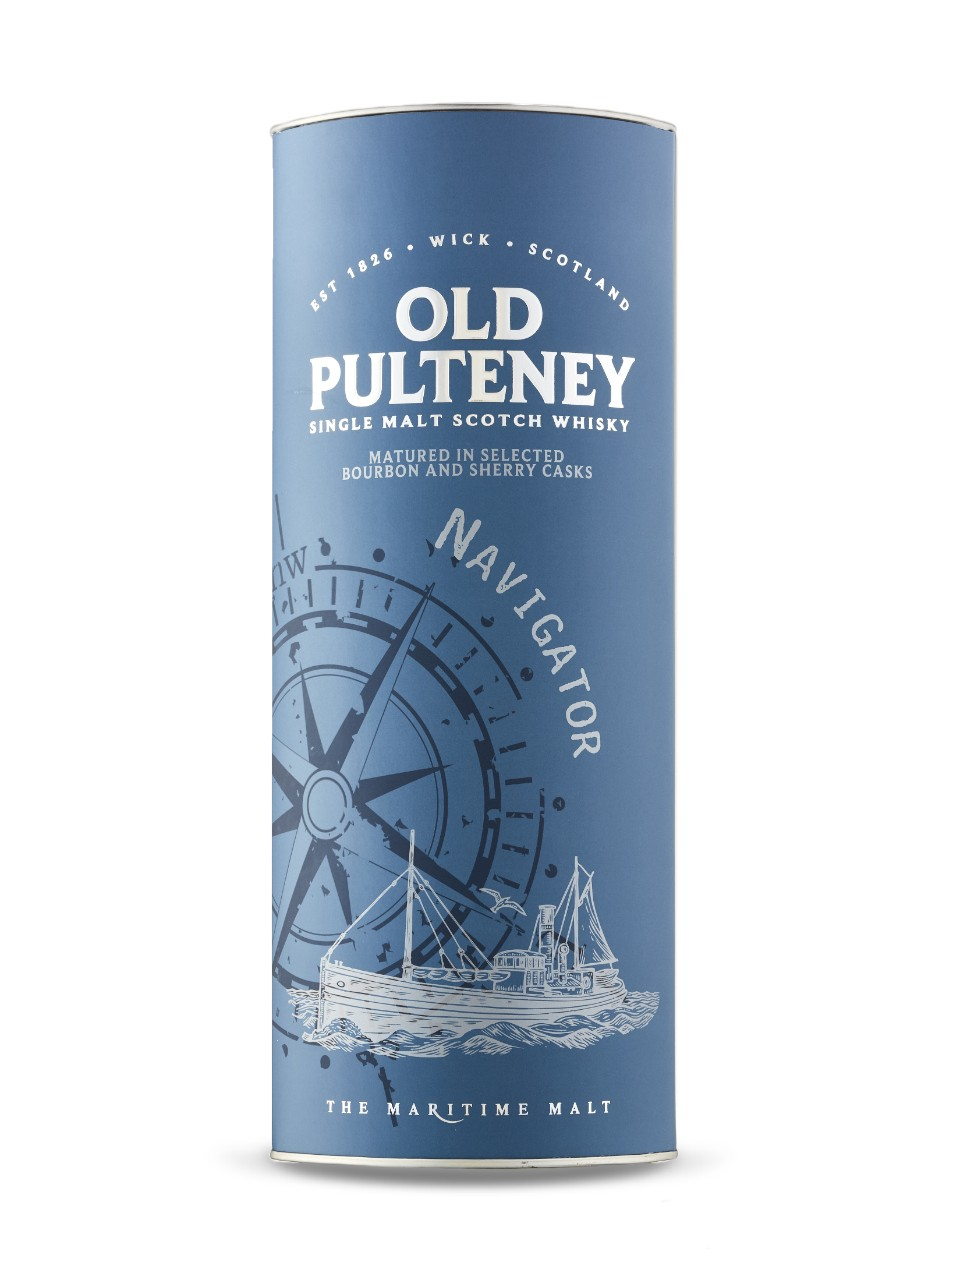 Whisky écossais Single Malt Old Pulteney Navigator                                                                             -A